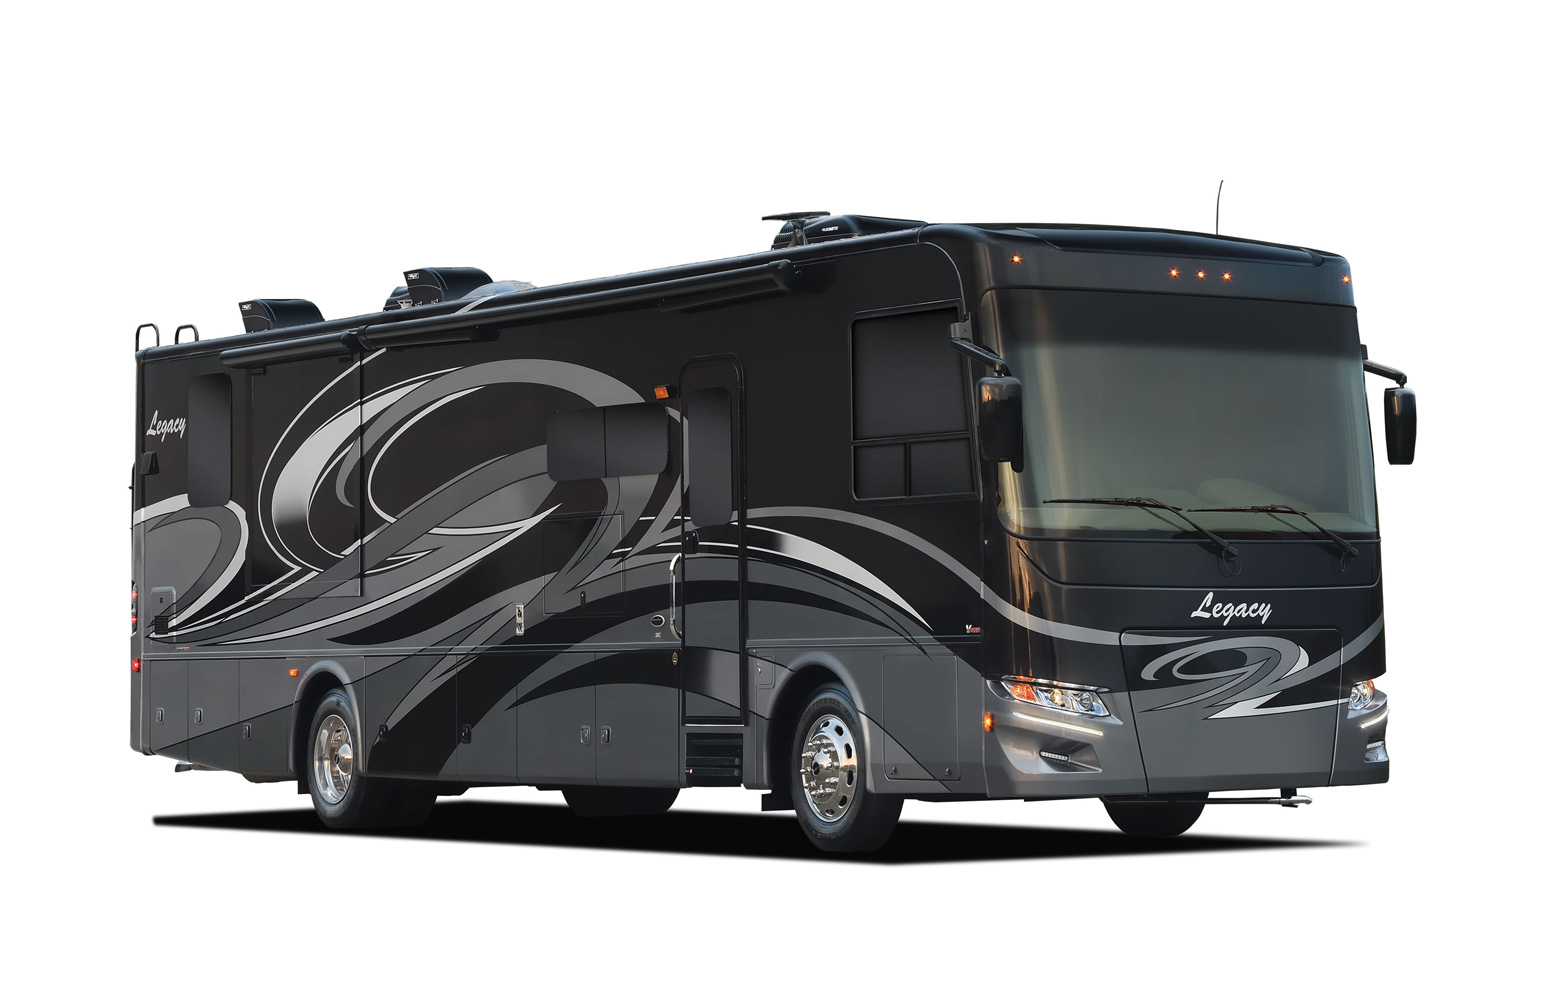 Legacy SR 340 | Forest River RV - Manufacturer of Travel